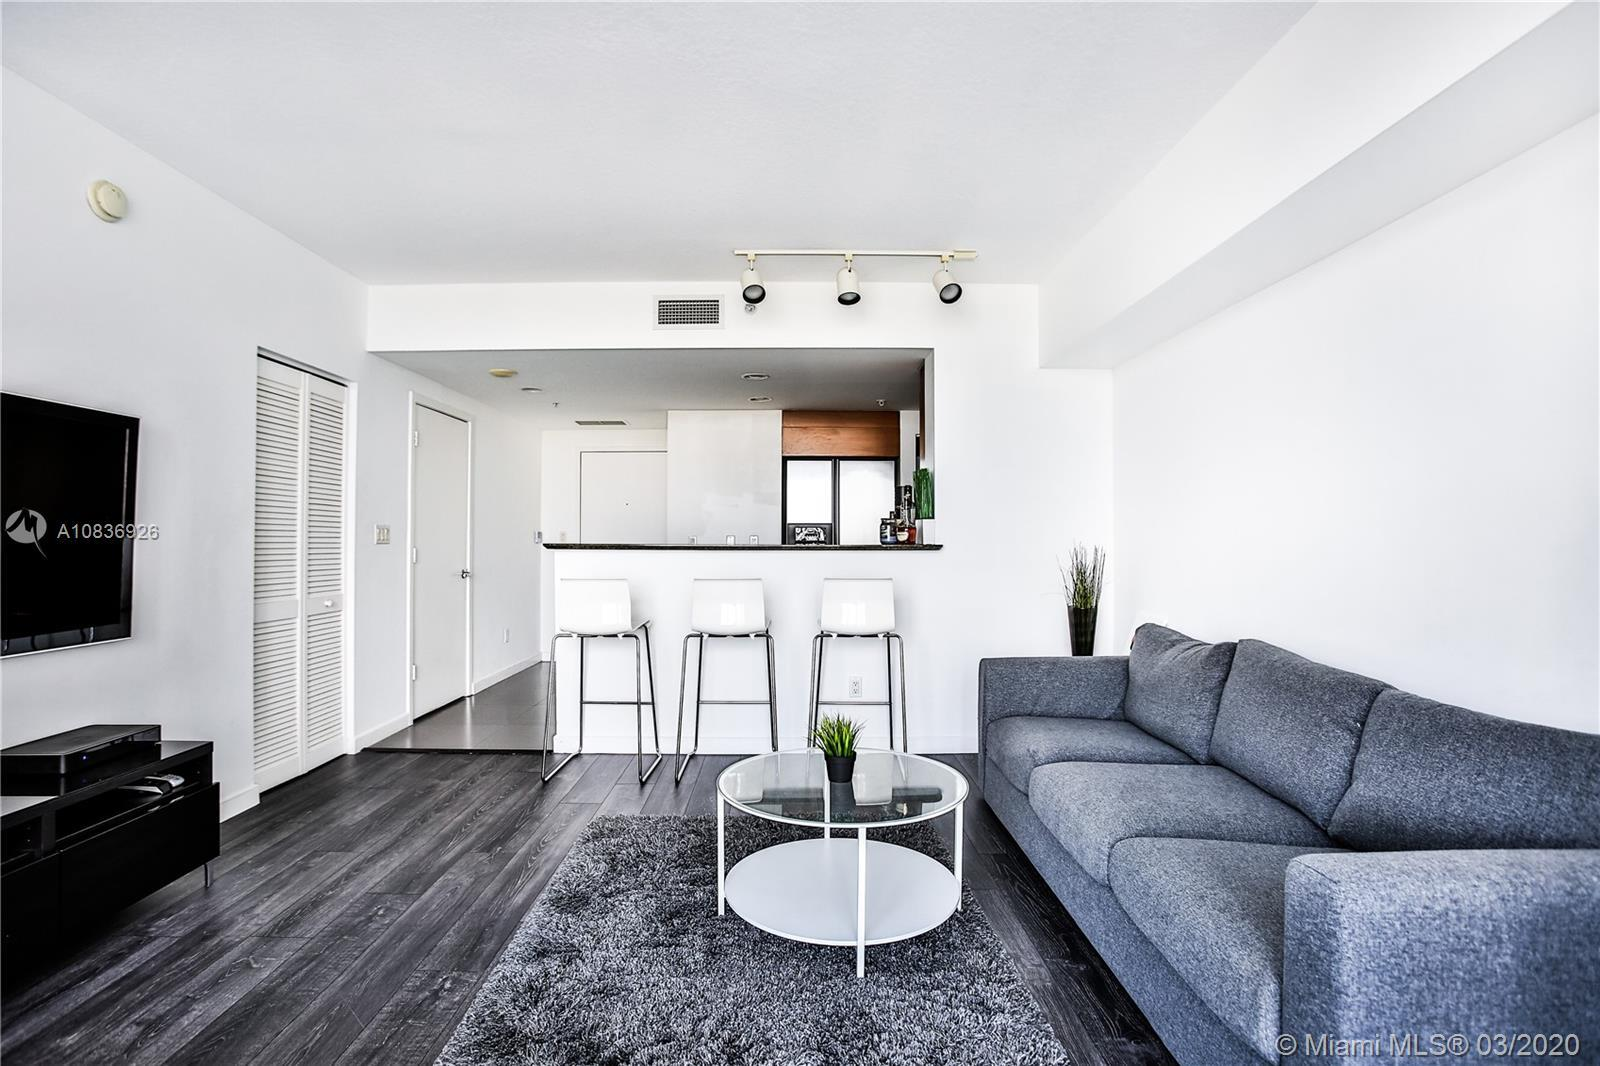 Beautifully furnished Studio with amazing views. On the 37th floor, you will enjoy amazing unobstruc